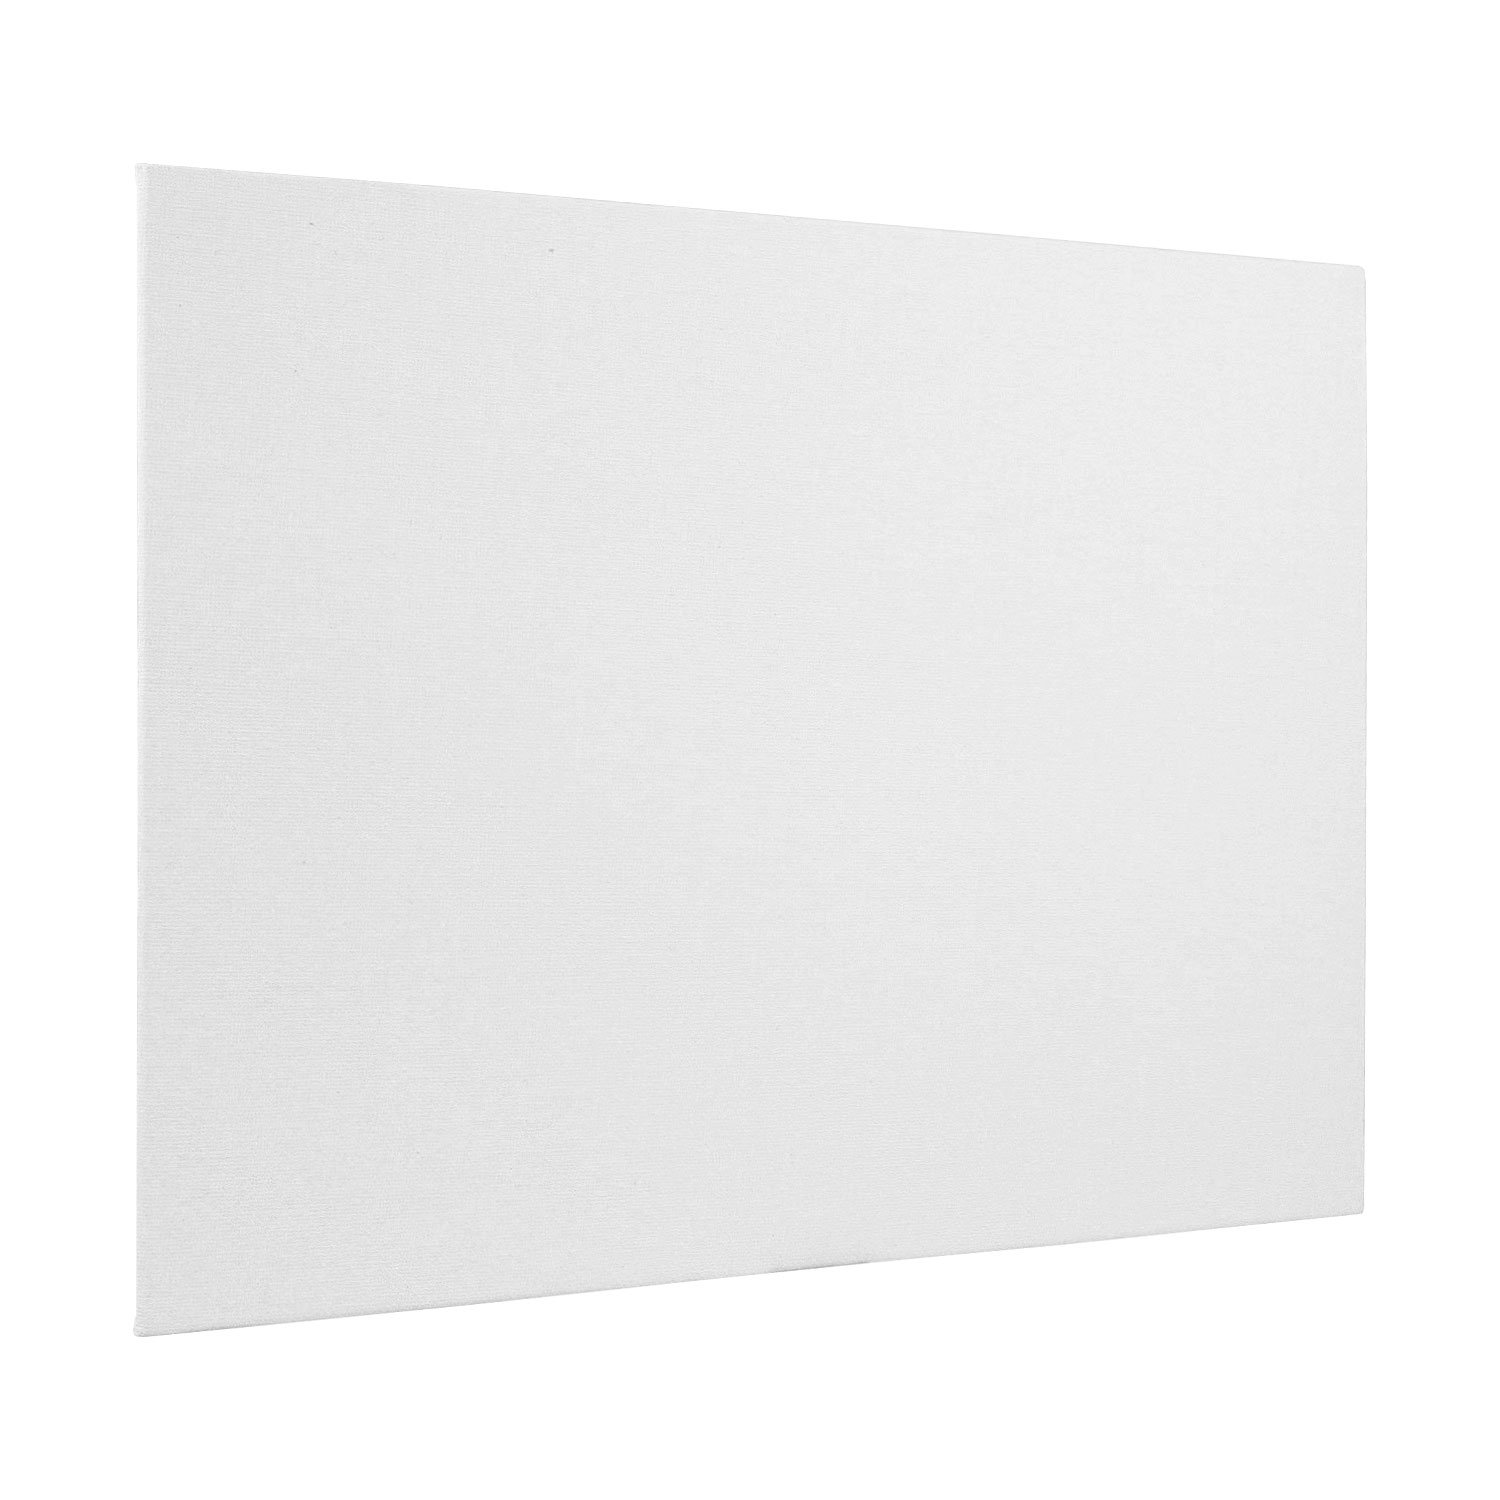 US Art Supply 11 X 14 inch Professional Artist Quality Acid Free Canvas Panels 12-Pack (1 Full Case of 12 Single Canvas Panels) by US Art Supply (Image #1)